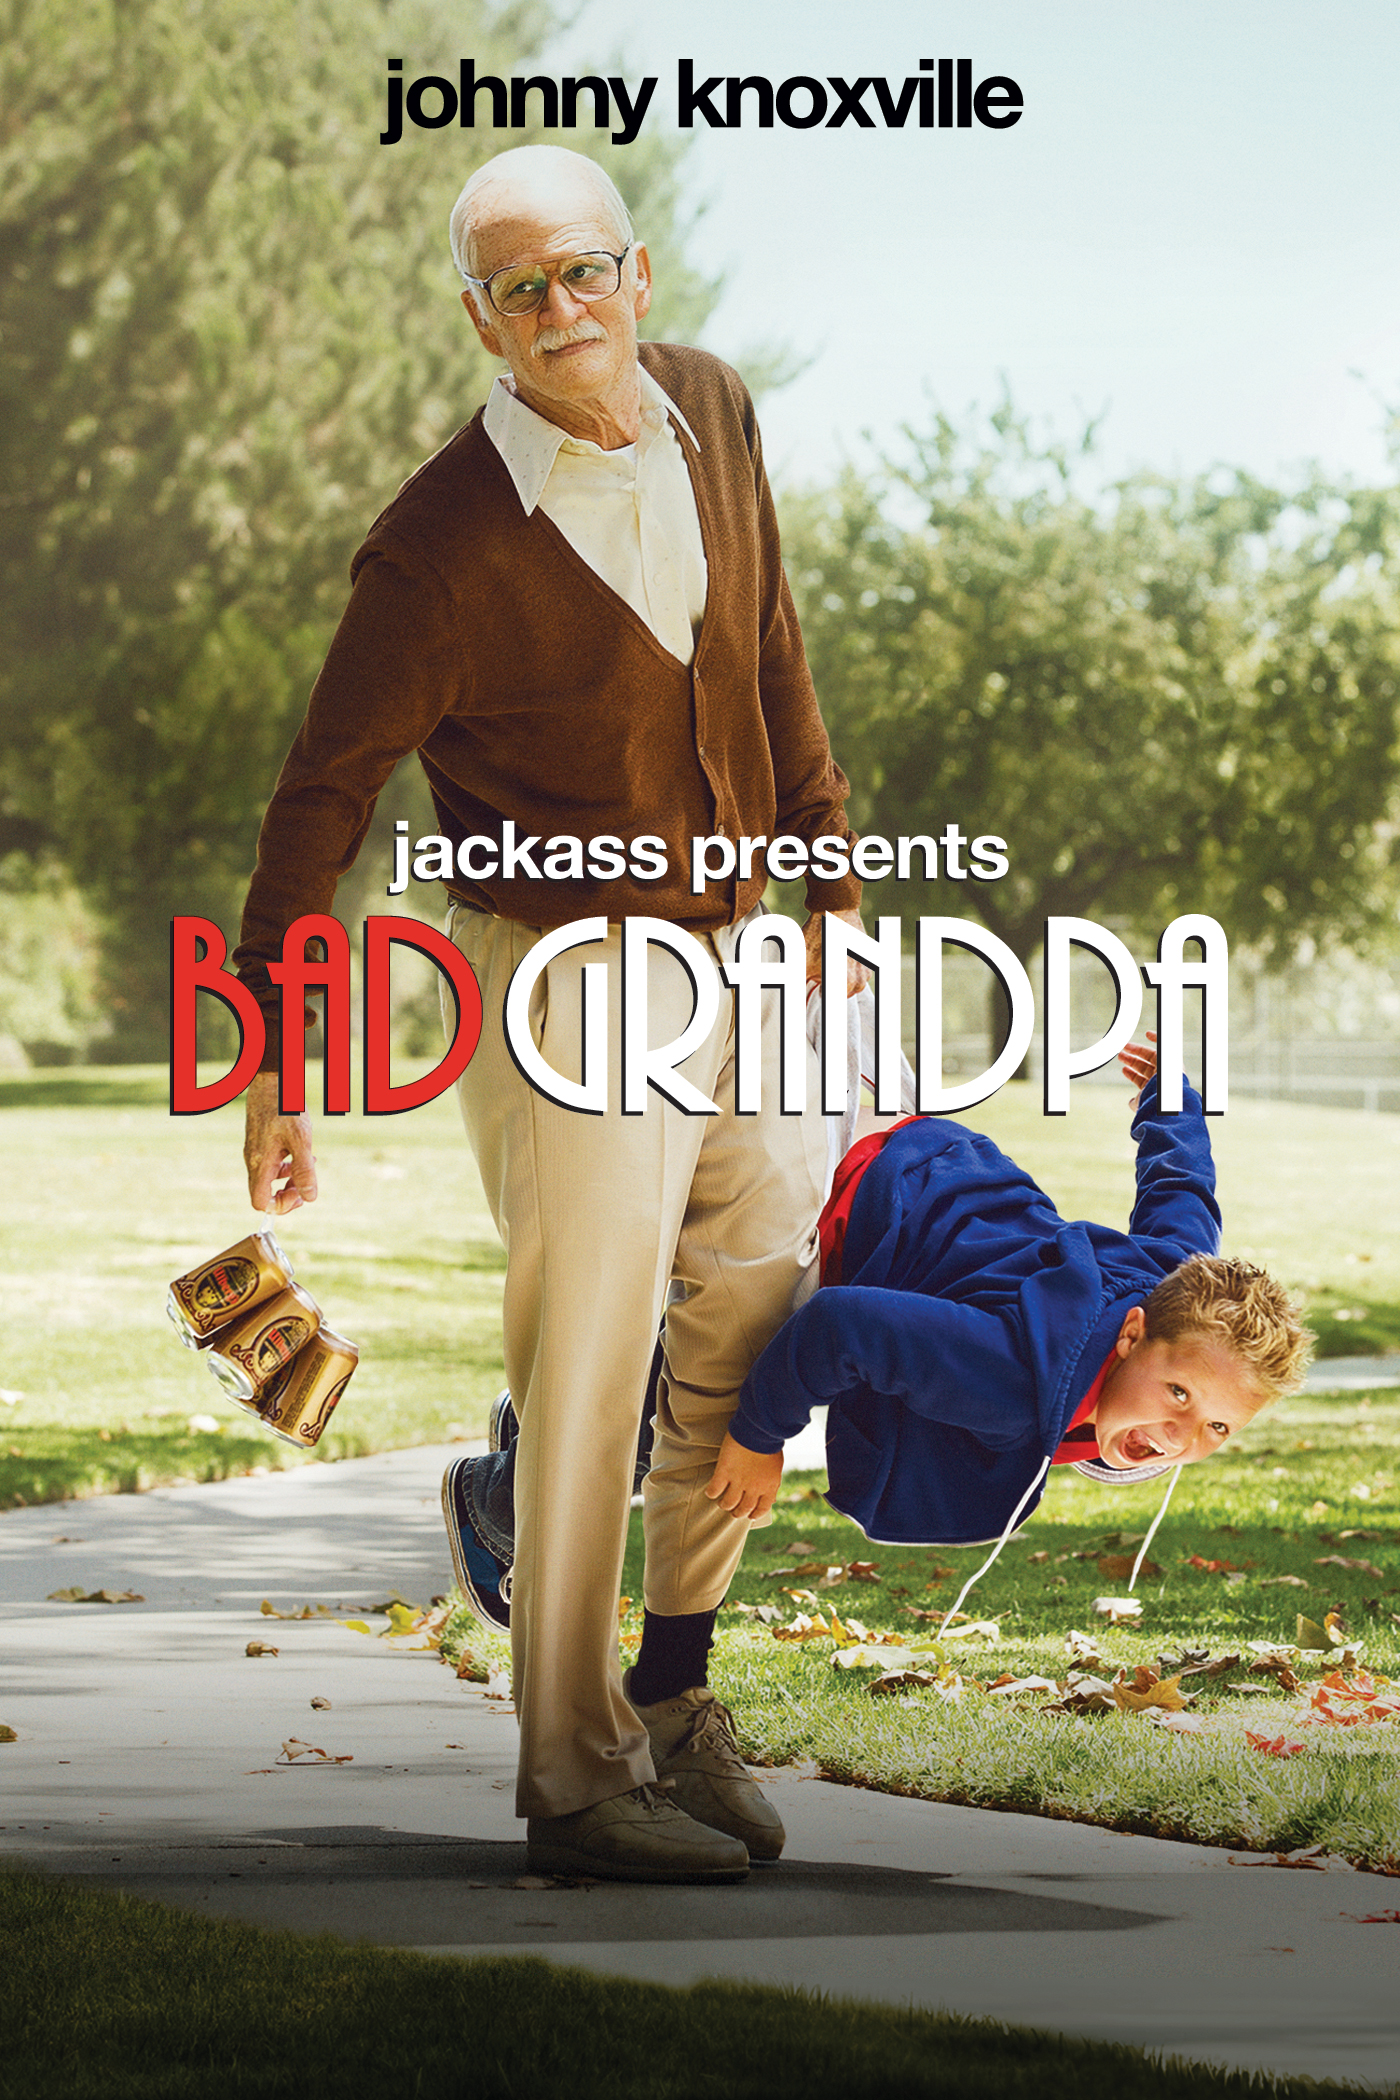 Itunes Movies Jackass Presents Bad Grandpa